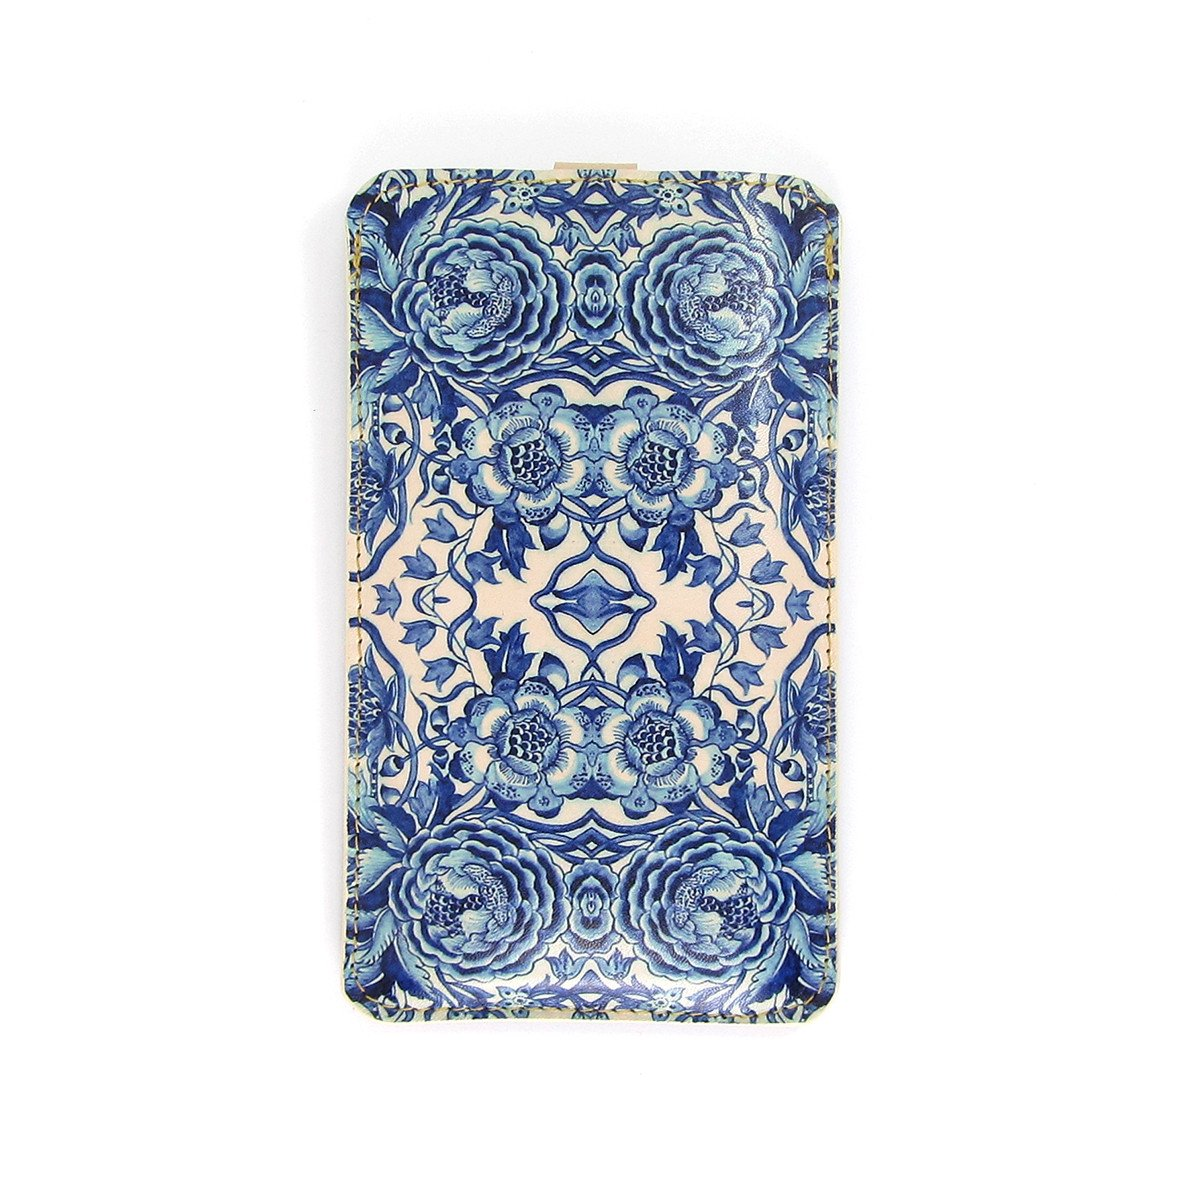 Leather Phone Case  - Blue & White Porcelain - Tovi Sorga  - 4